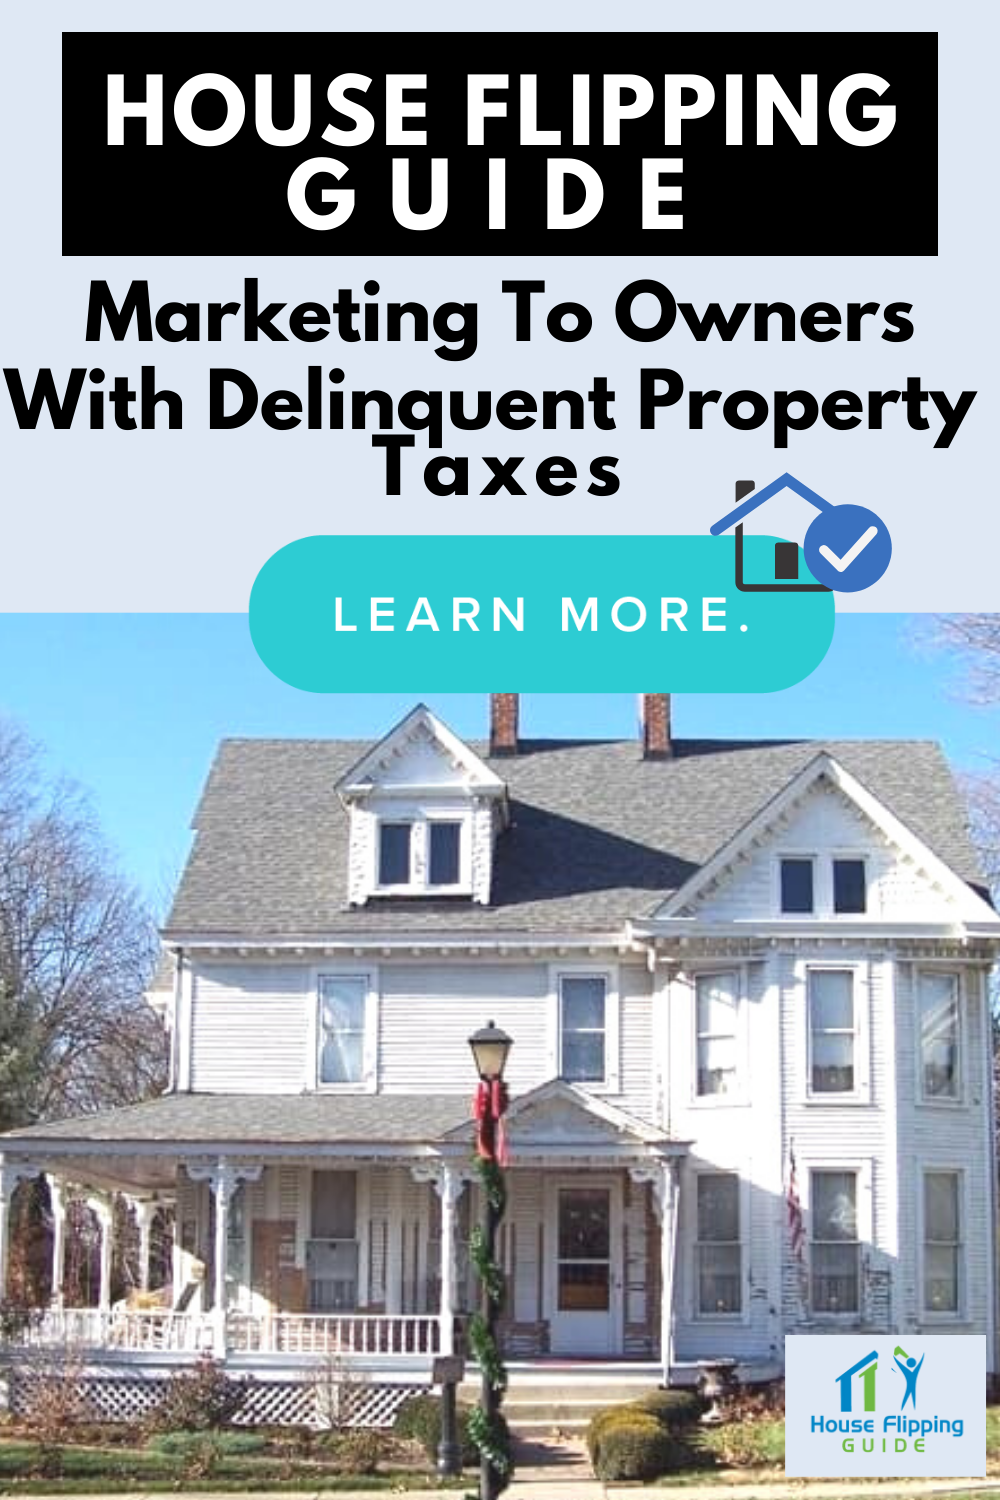 House Flipping Guide: Marketing to Owners with Delinquent Property Taxes